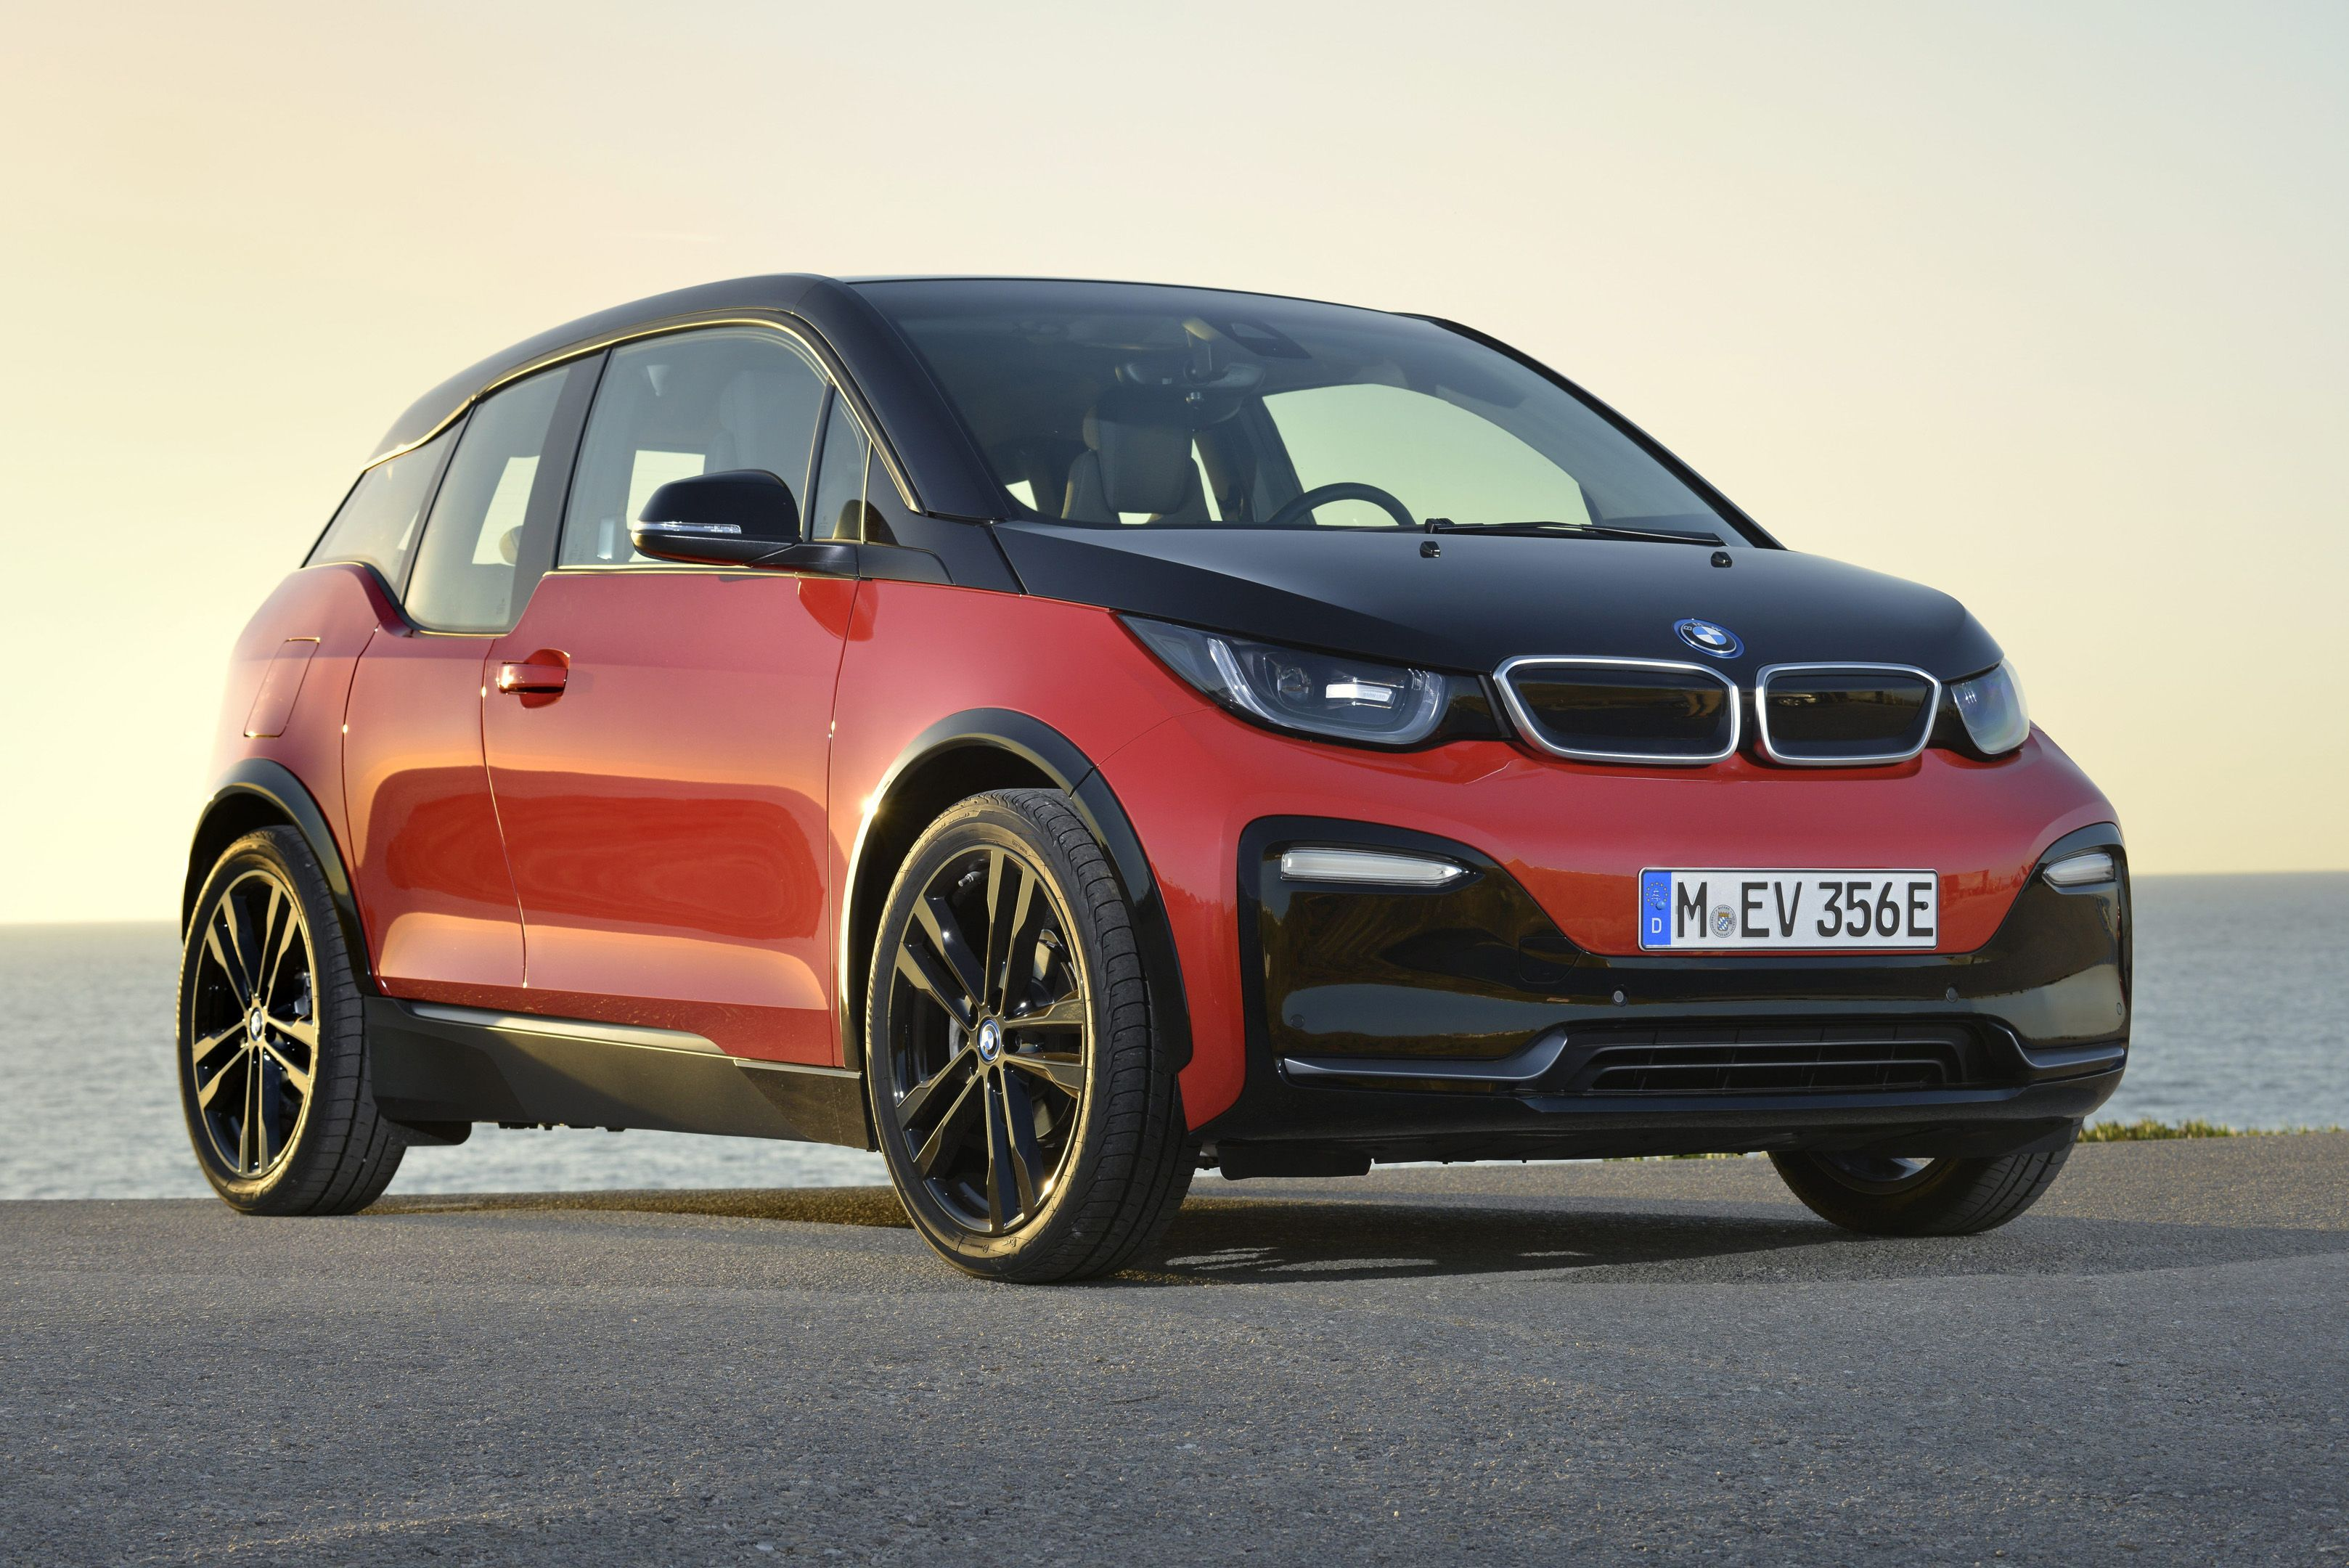 x years highres again in bmw new uhd video range wallpaper preview kwh double to